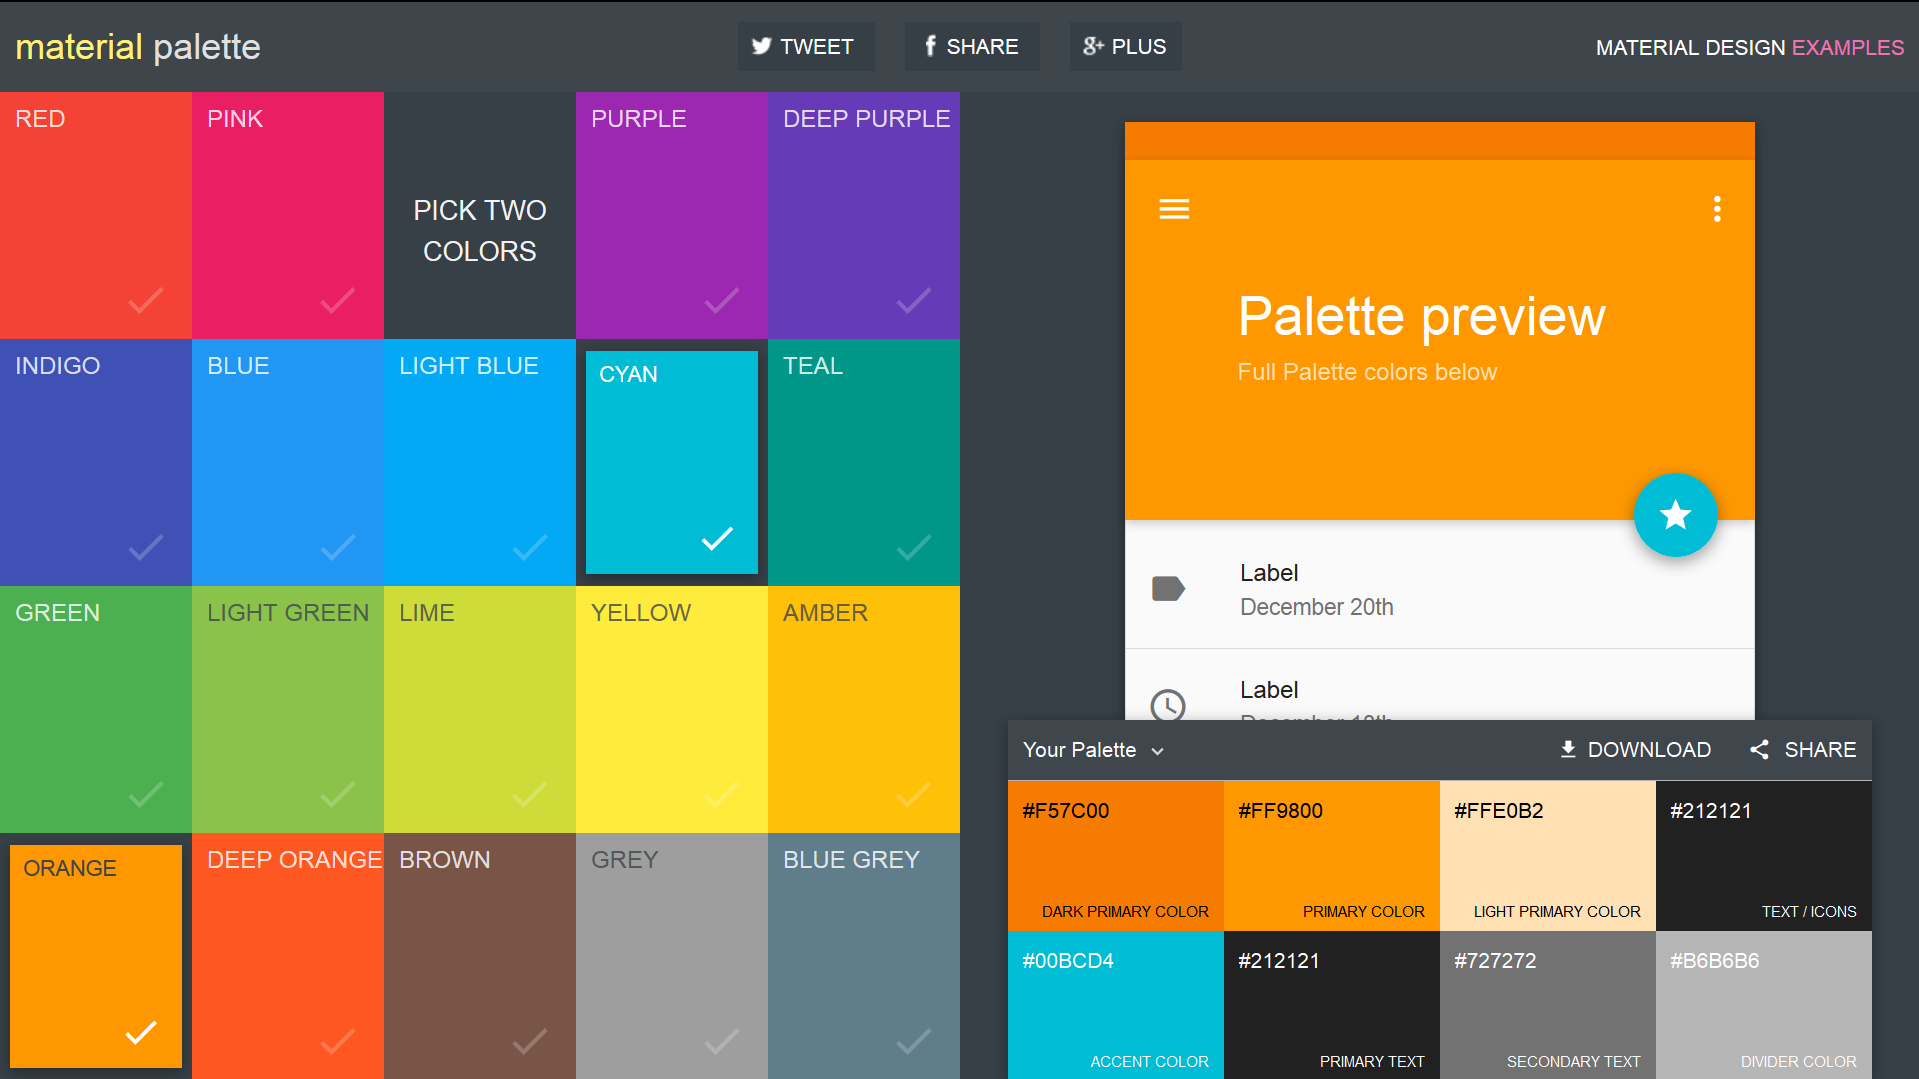 Color Schemes 4 Tools For Creating Brilliant Material Design Color Pallets